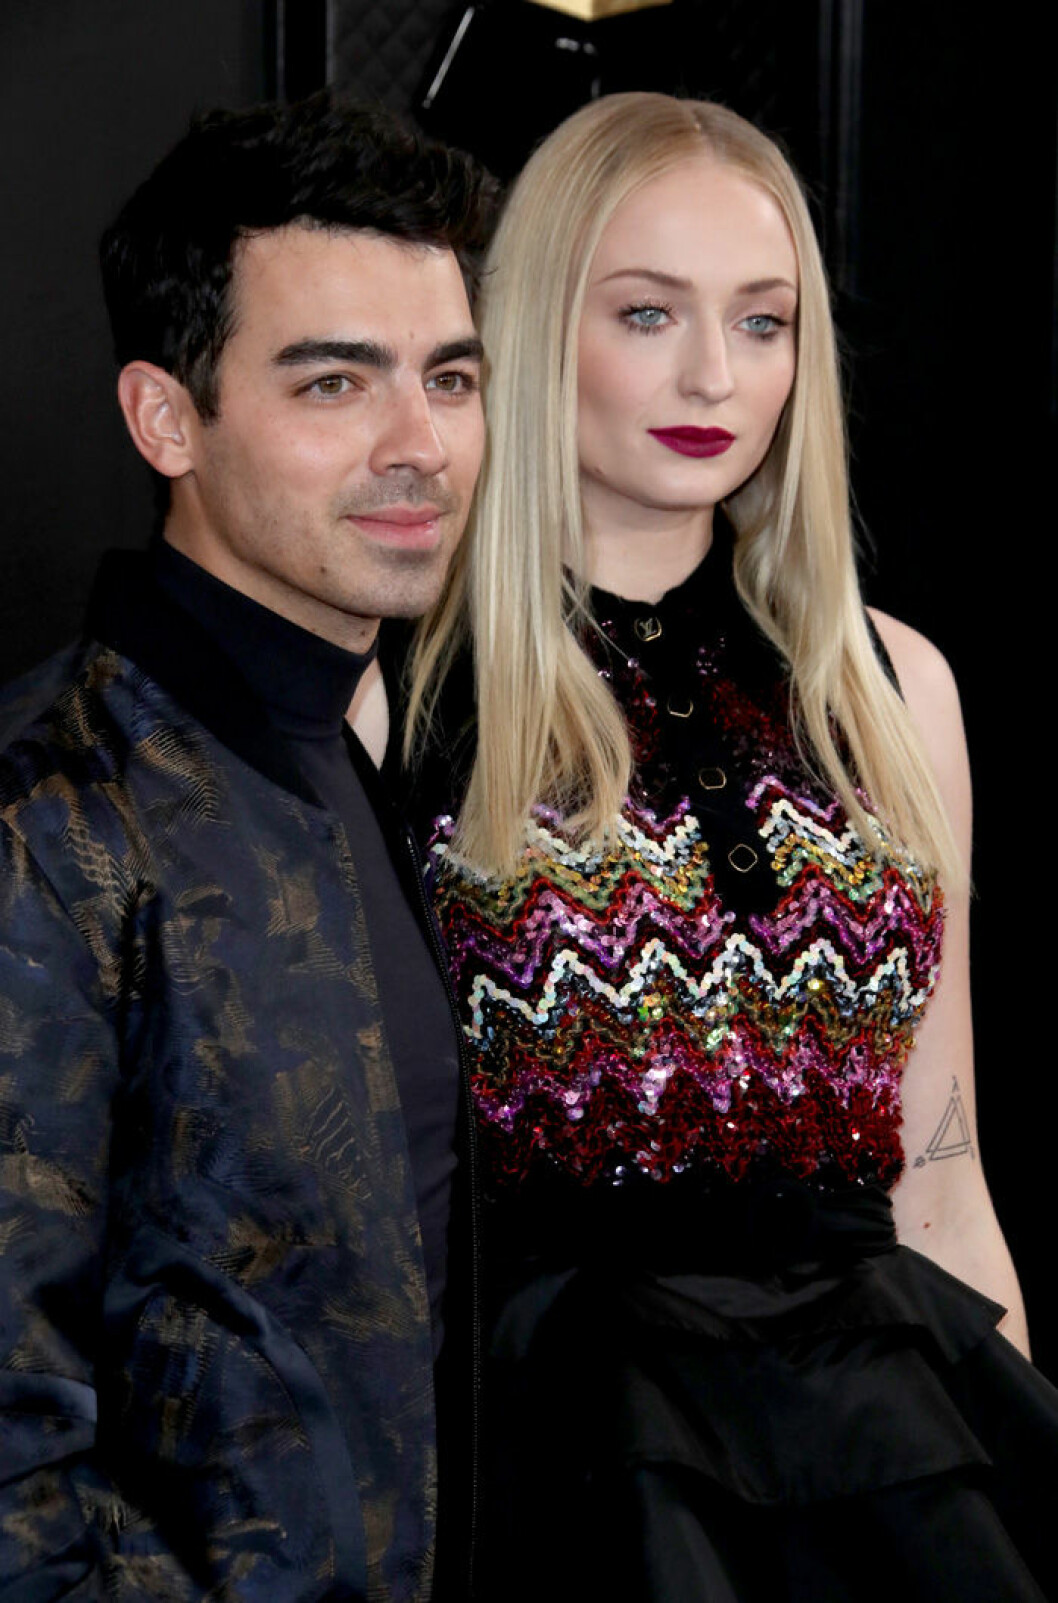 En bild på Sophie Turner och Joe Jonas på Grammy Awards, 2020.